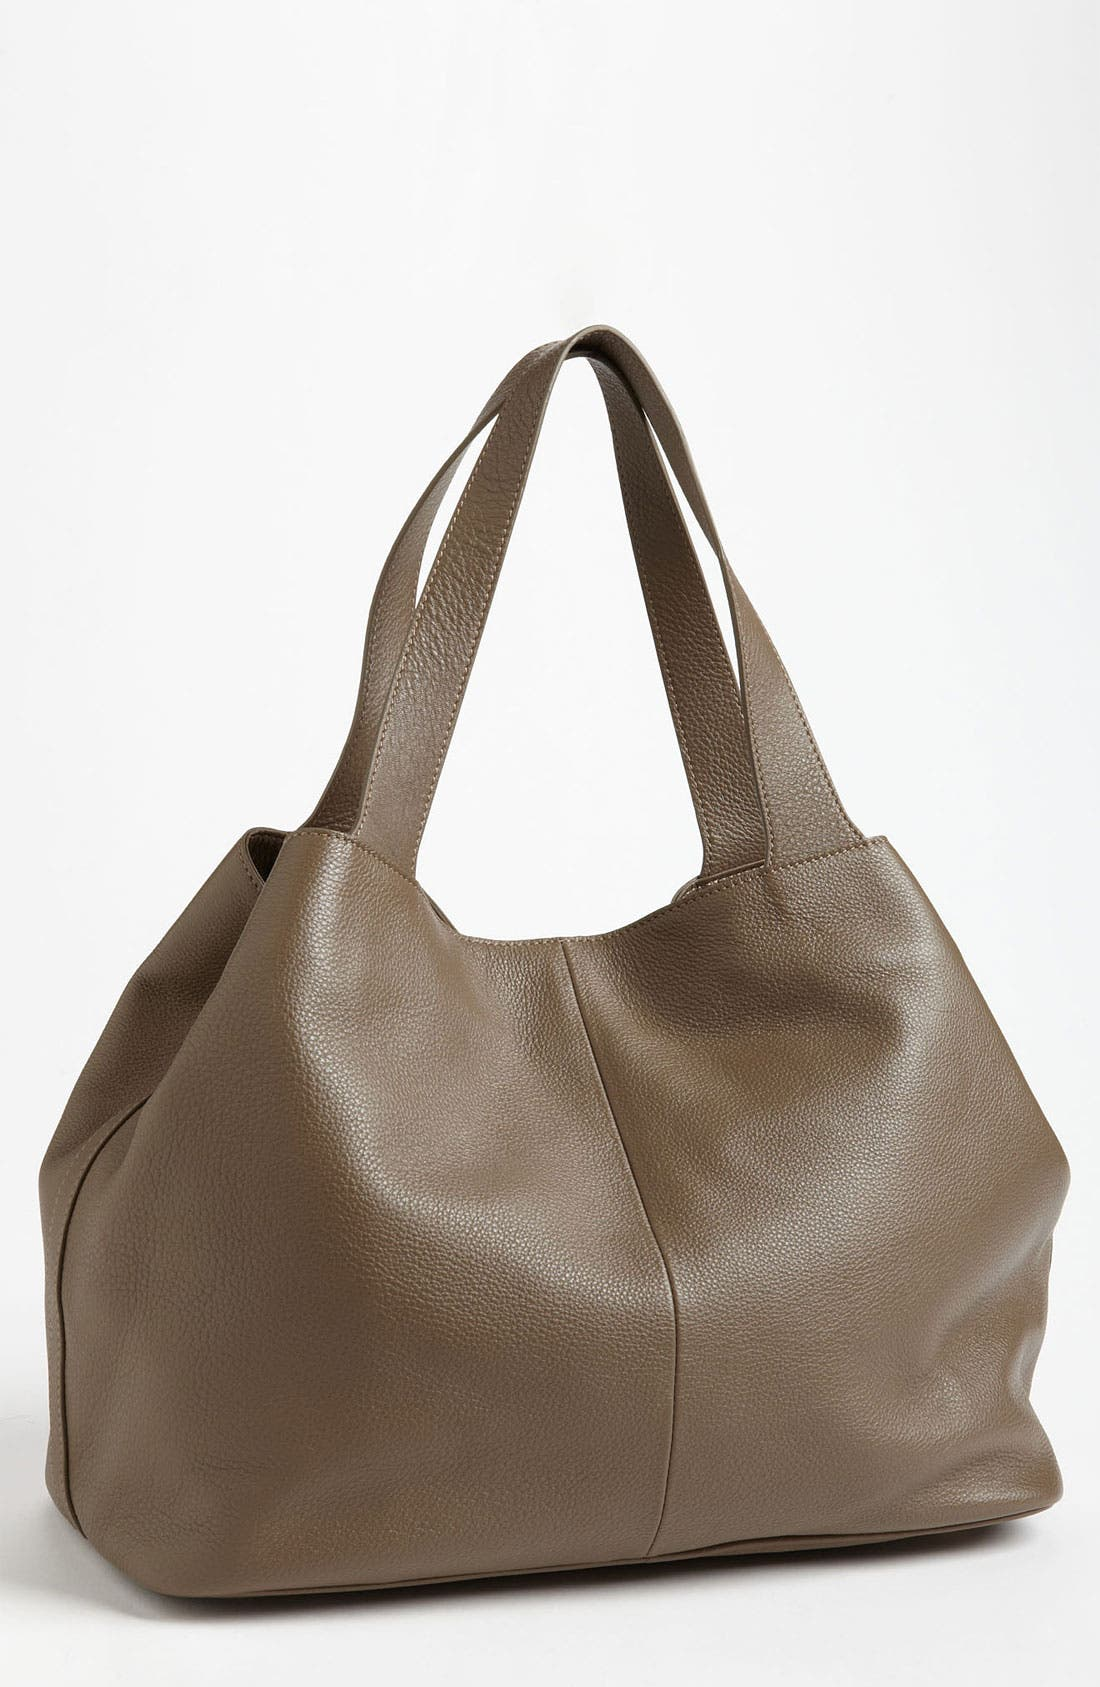 Alternate Image 1 Selected - Halogen® 'Sofia' Leather Tote